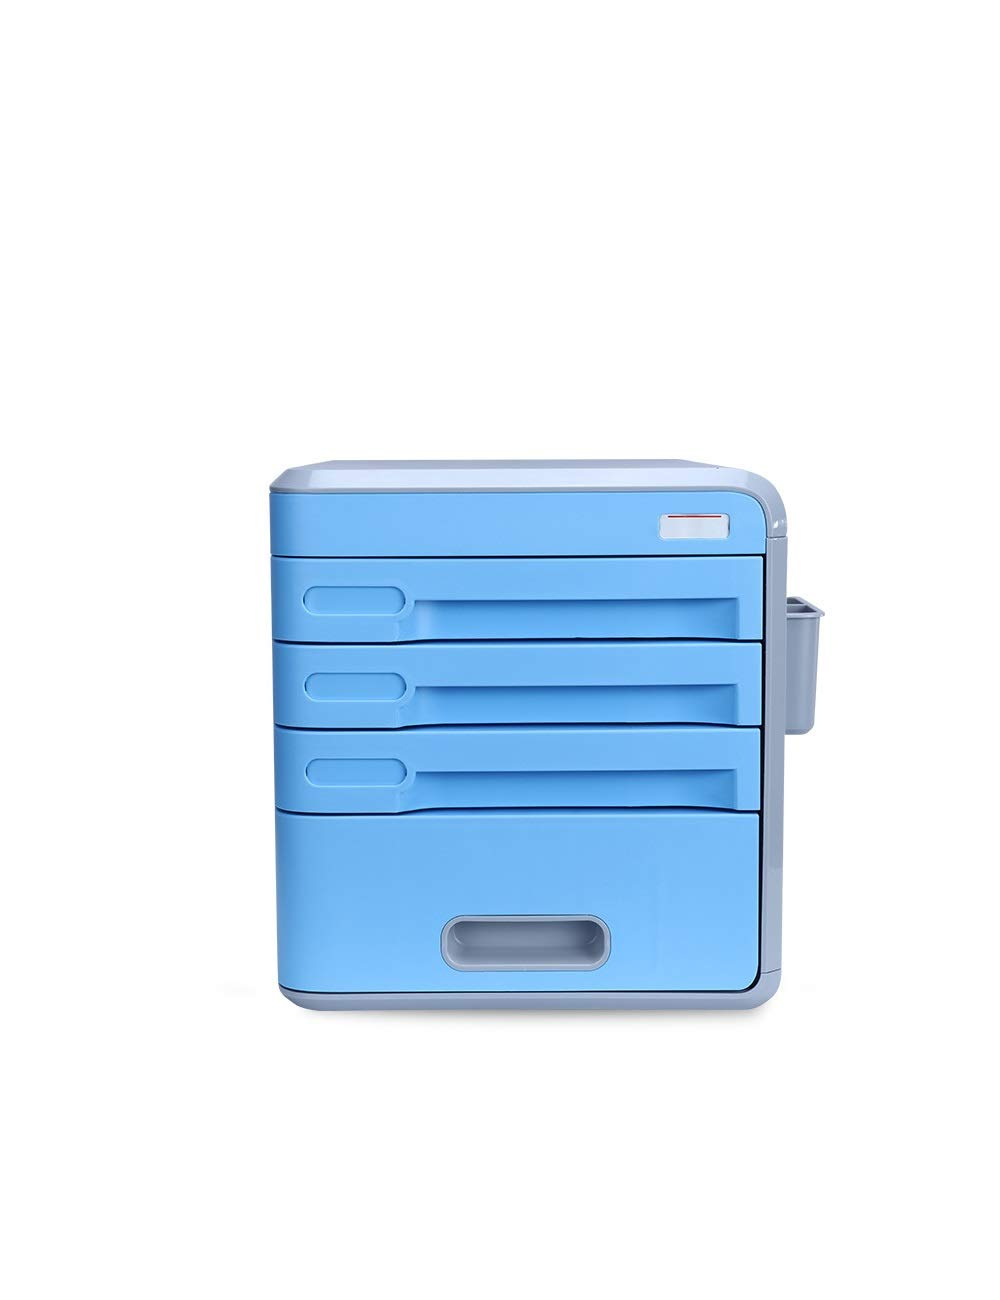 File Cabinet Office Desktop Drawer Type File Manager Stationery Cabinet 4th Floor A4 Plastic Data Cabinet Storage Box Storage Filing cabinets